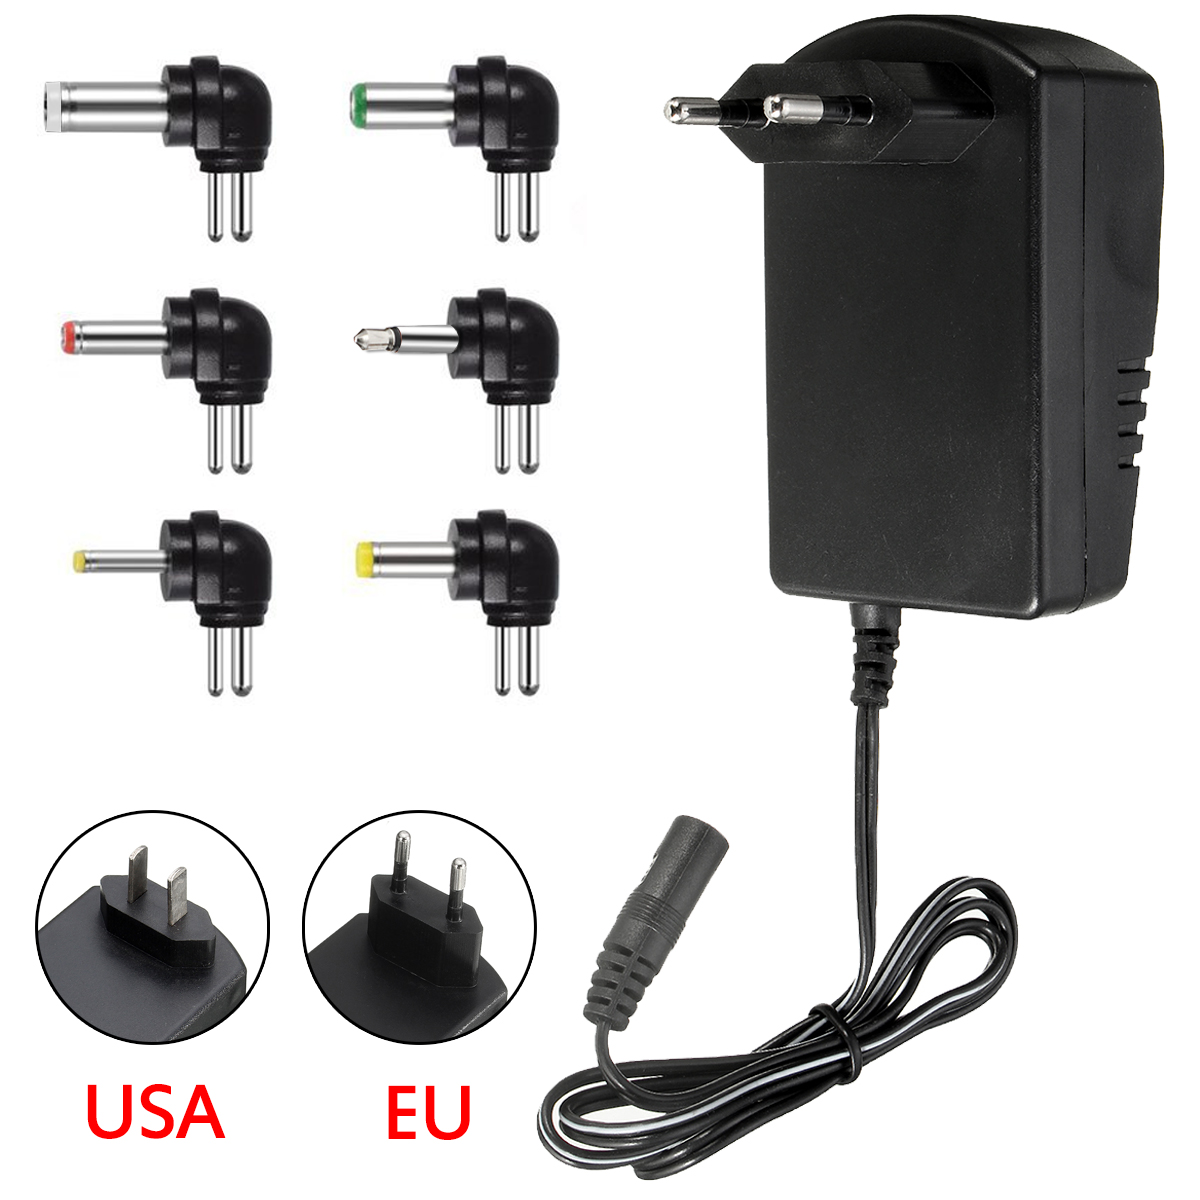 Multi Voltage Power Adapter 2500mA 3v 4.5v 6v 9v 12v DC Power Supply